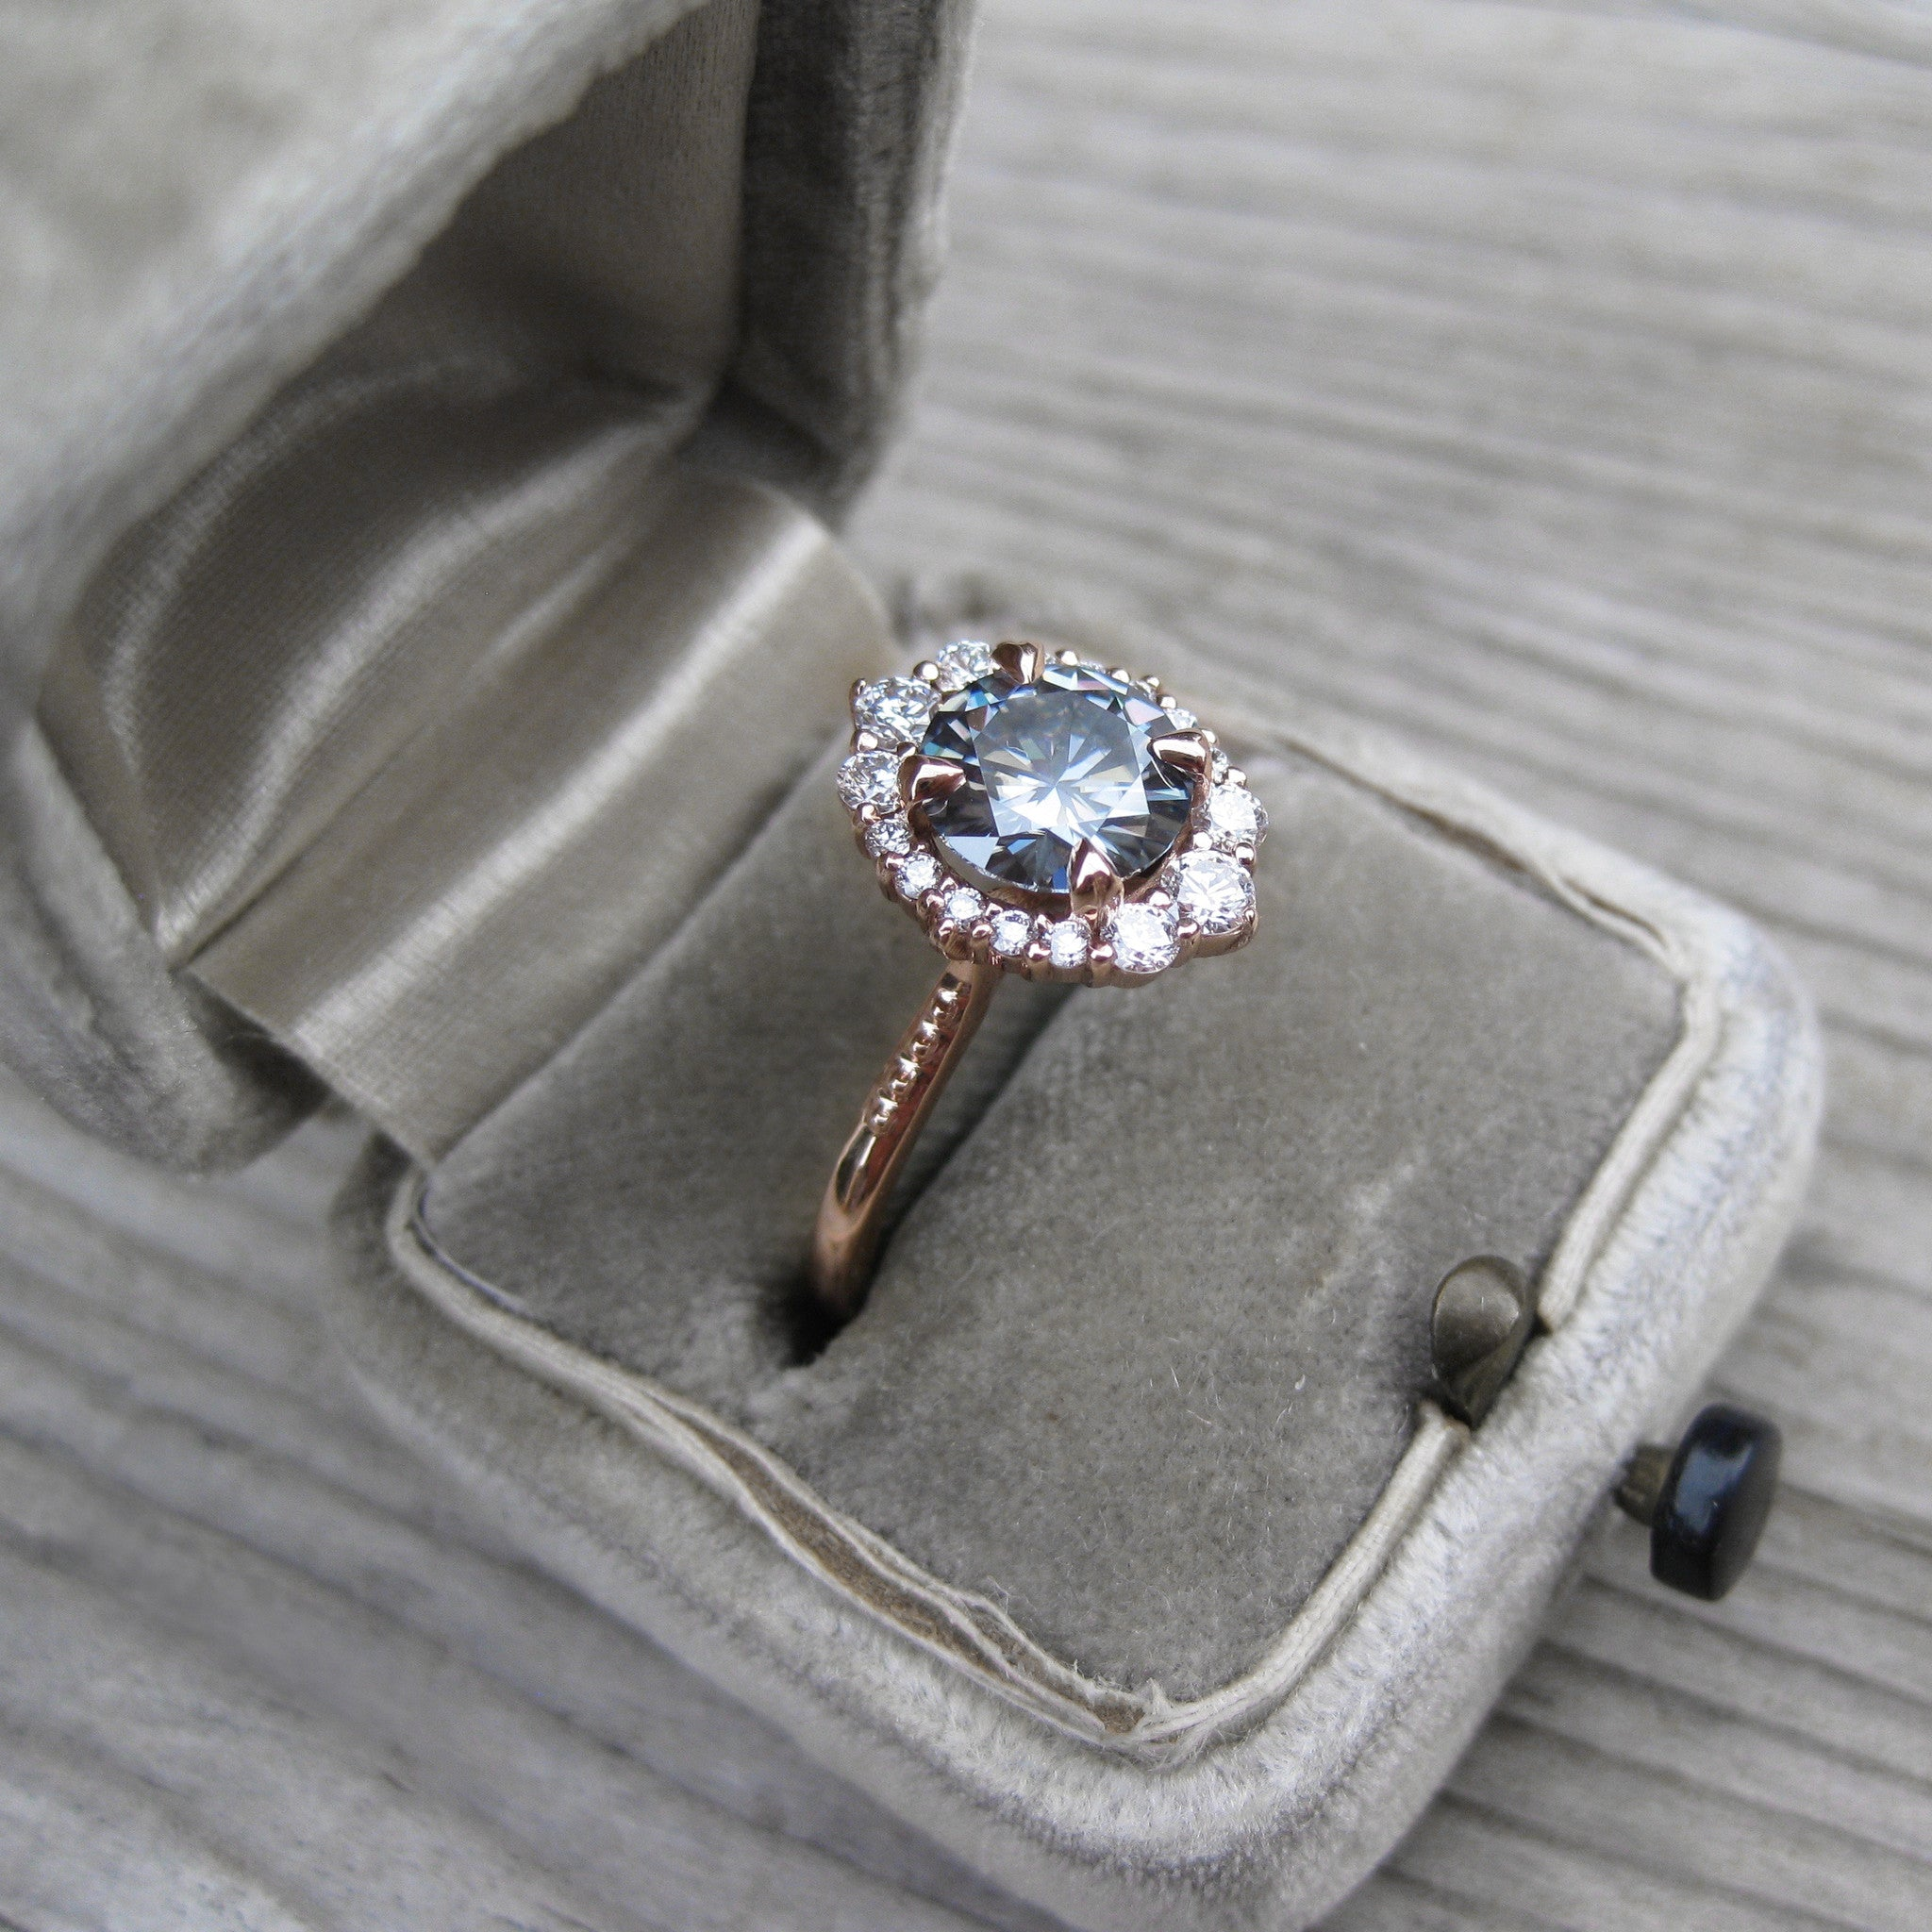 danabronfman rings collections engagement wedding with cut band halo bridal white in diamond grey rose gold tcw ring hammered